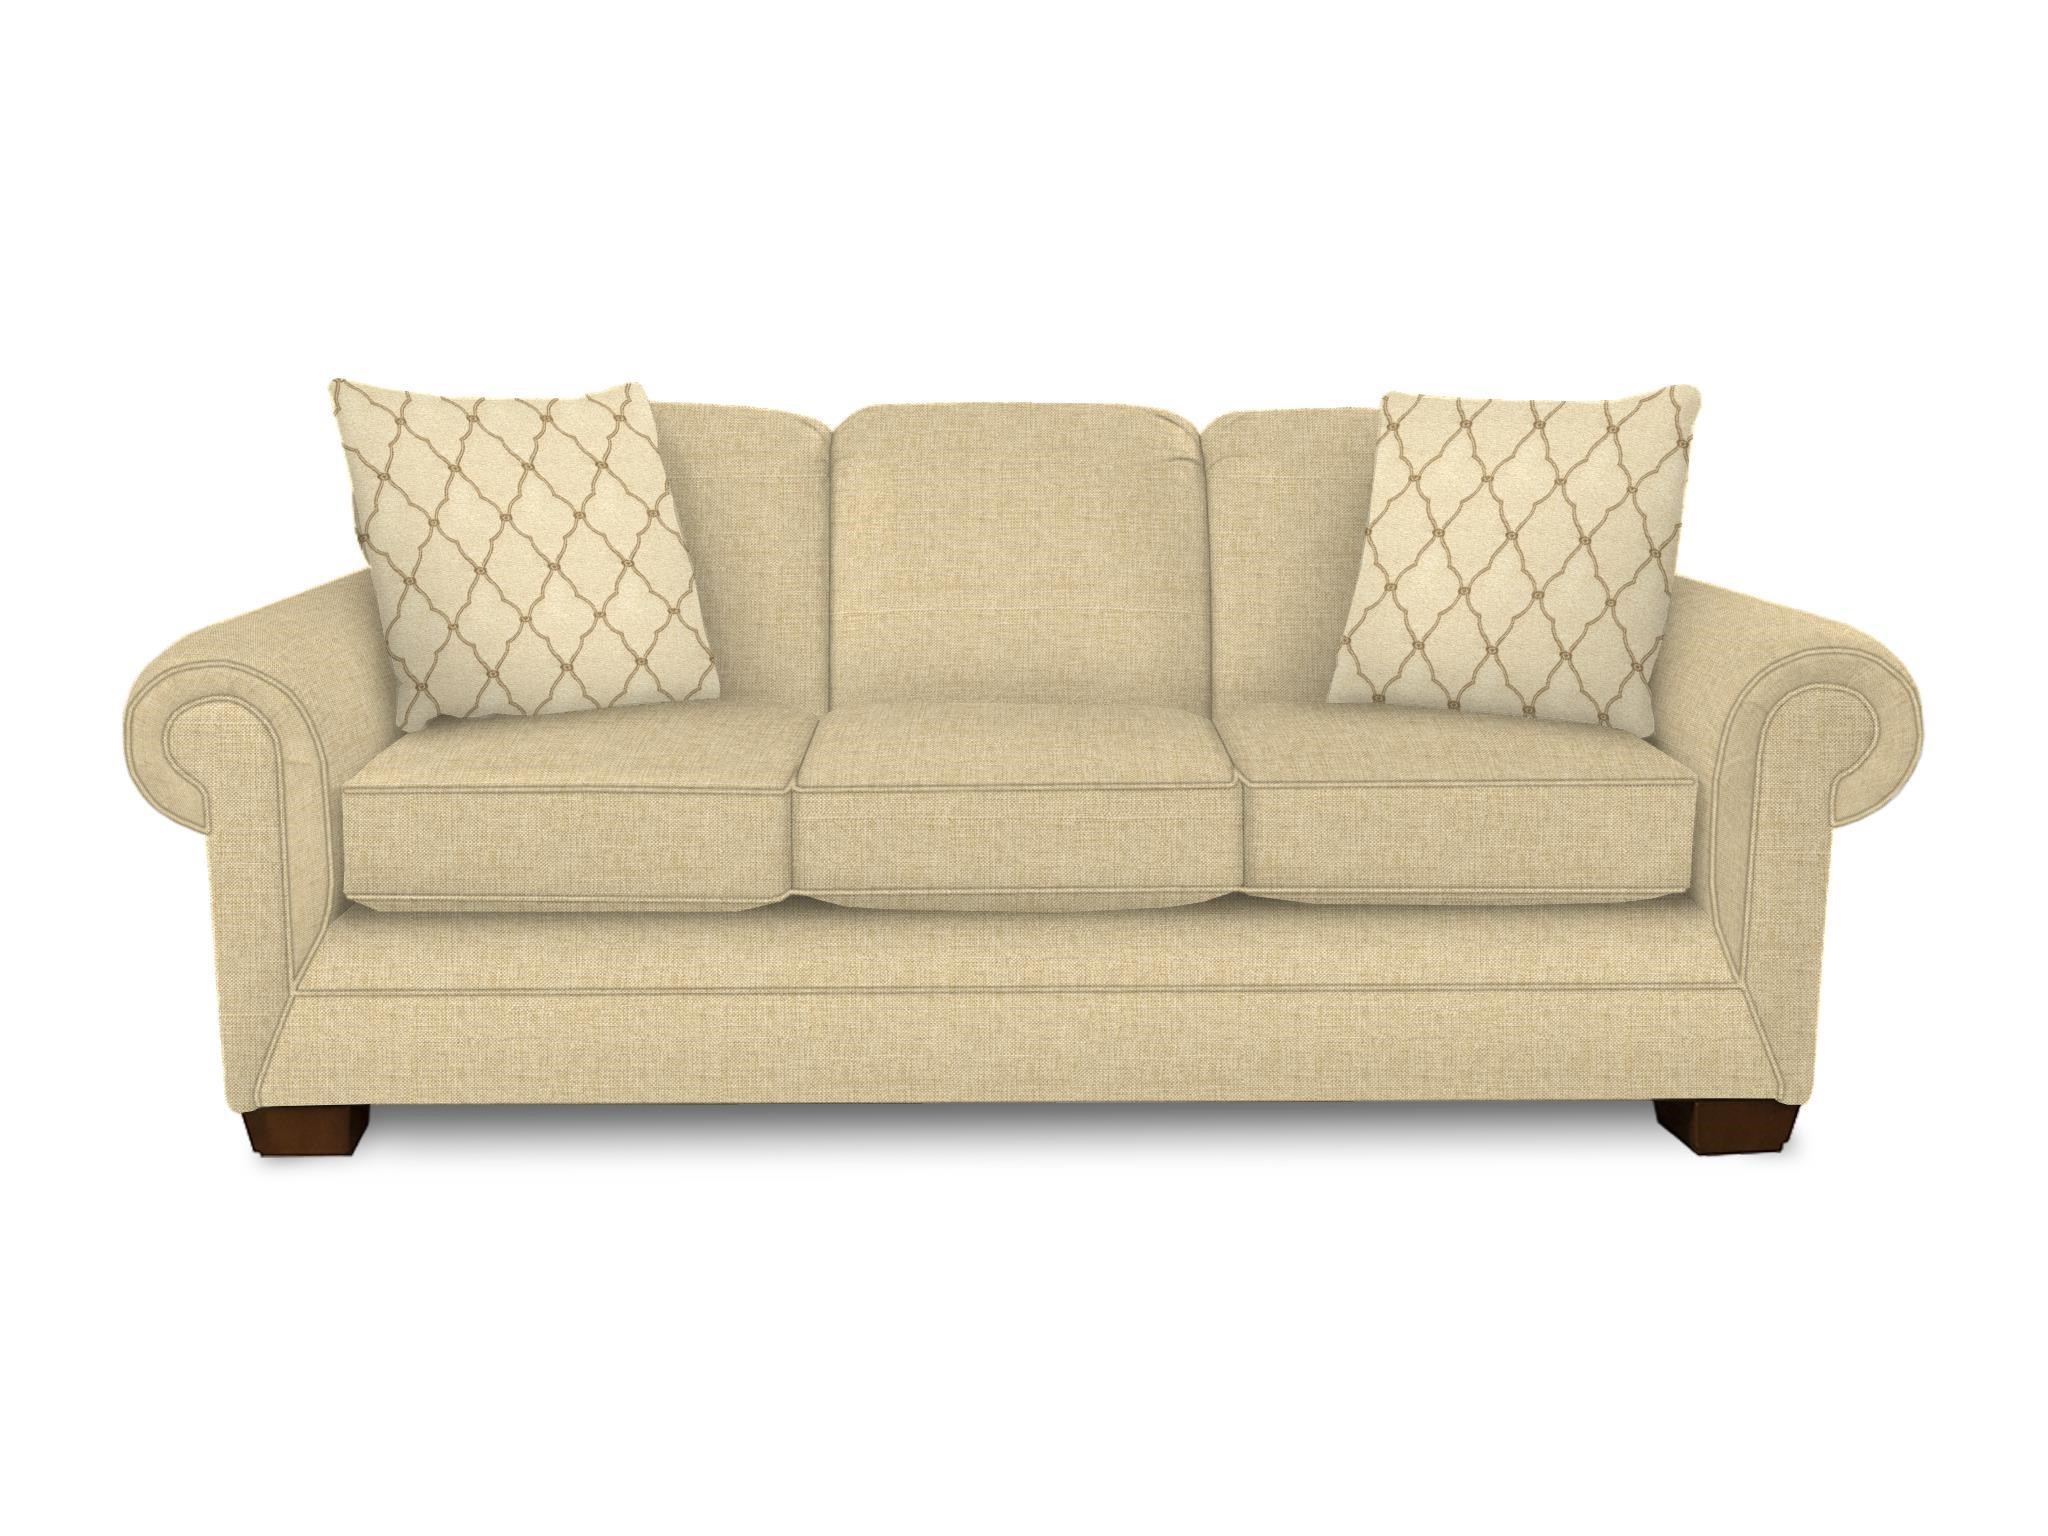 England Monroe Sofa - Item Number: 1435 Sofa